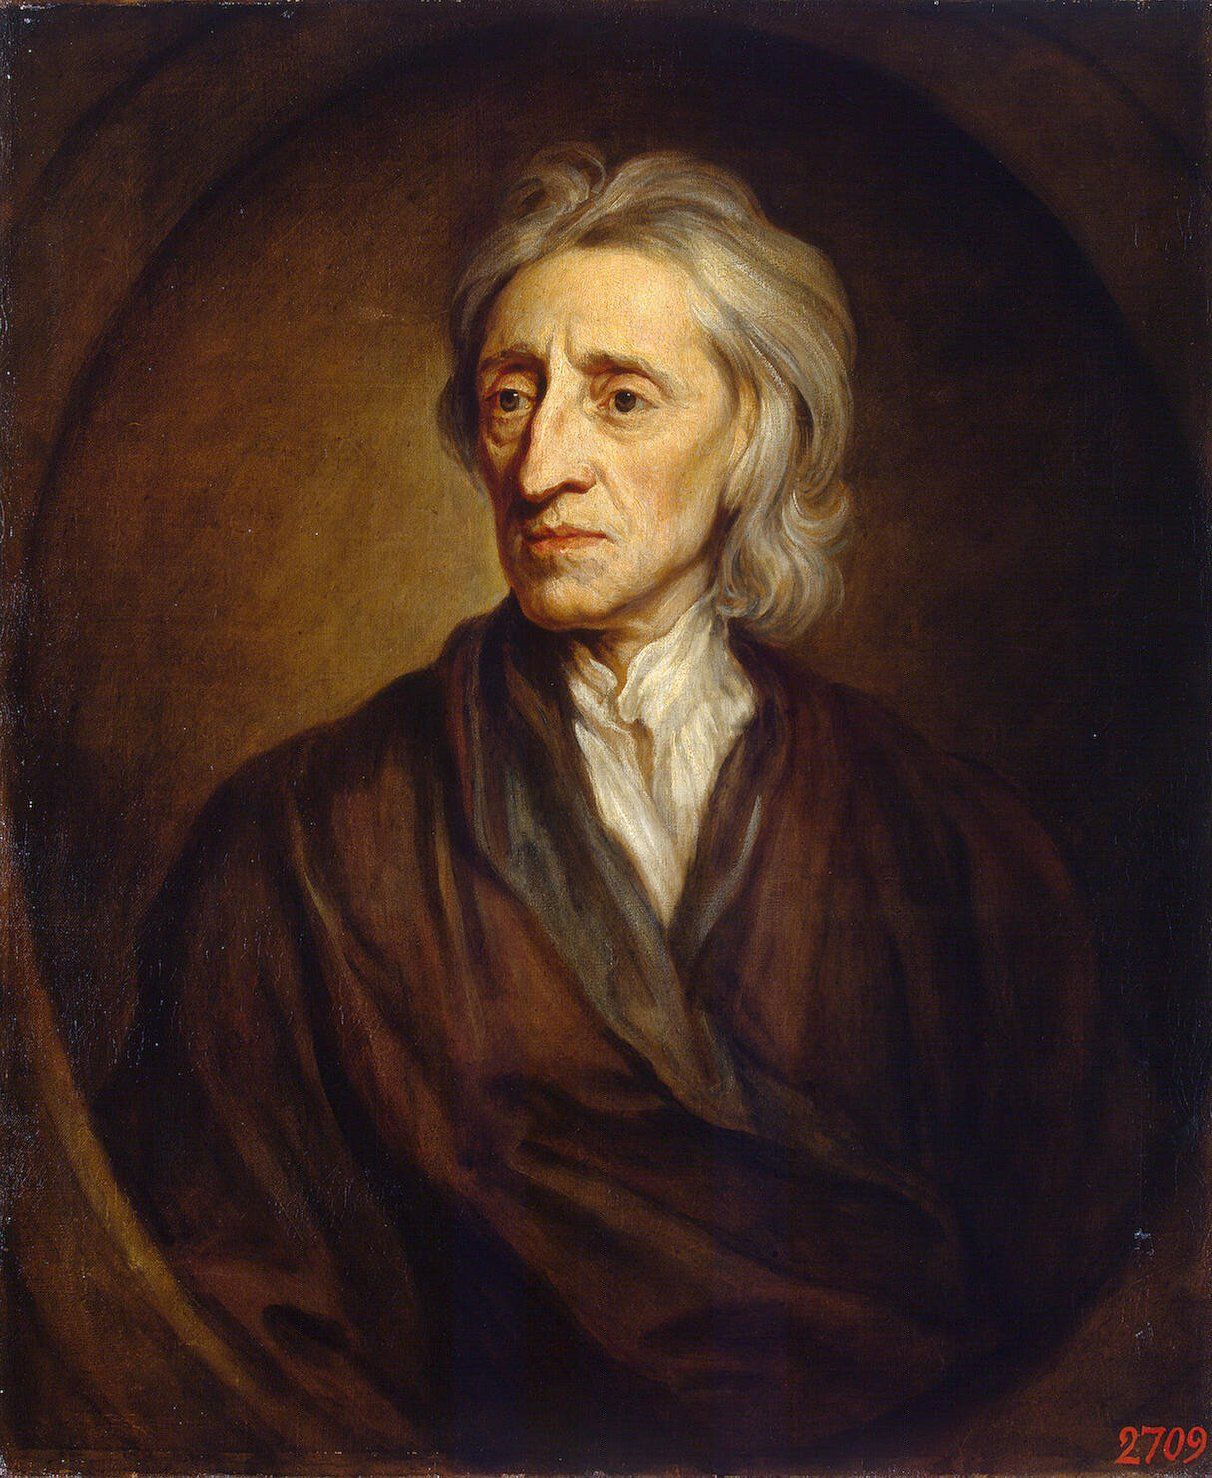 a biography of john locke the father of liberal philosophy John locke was an life, liberty, and property: a biography this book became one of the most widely reprinted and influential works on philosophy in 1693.